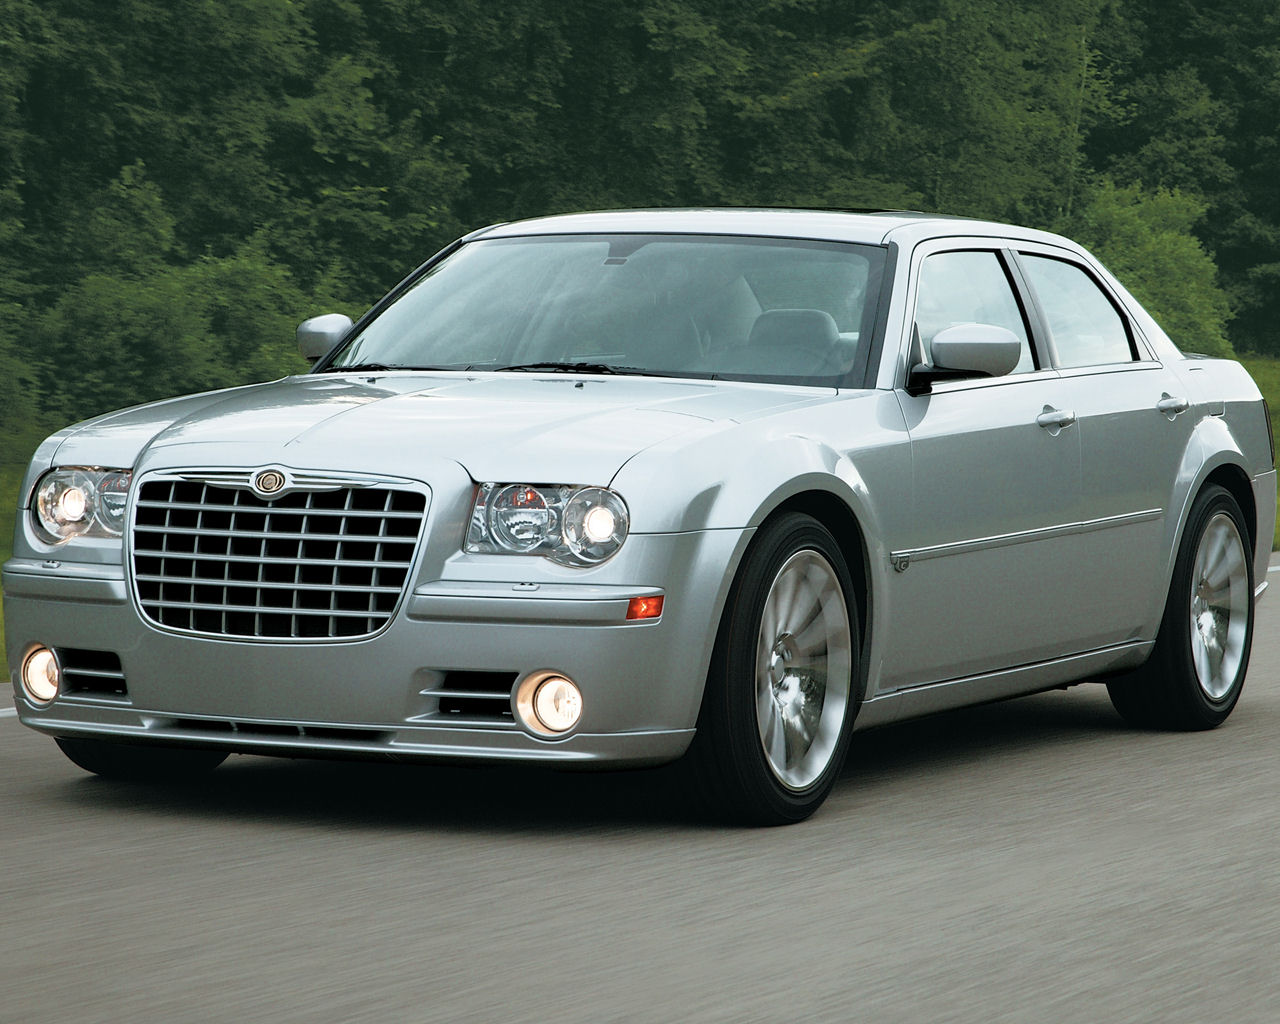 Chrysler 300 Touring Limited 300c Srt8 Free 1280x1024